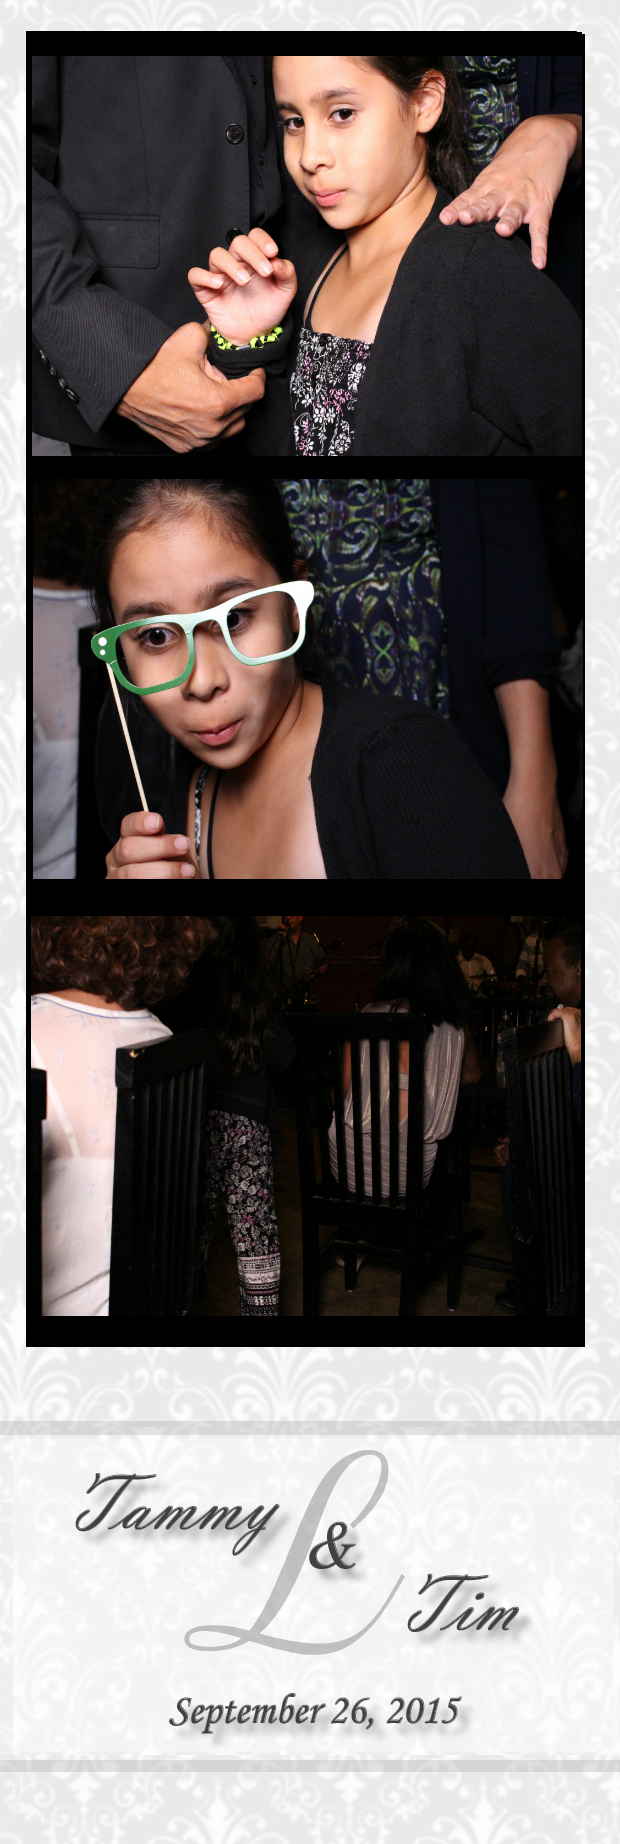 Guest House Events Photo Booth Strips T&T (20).jpg